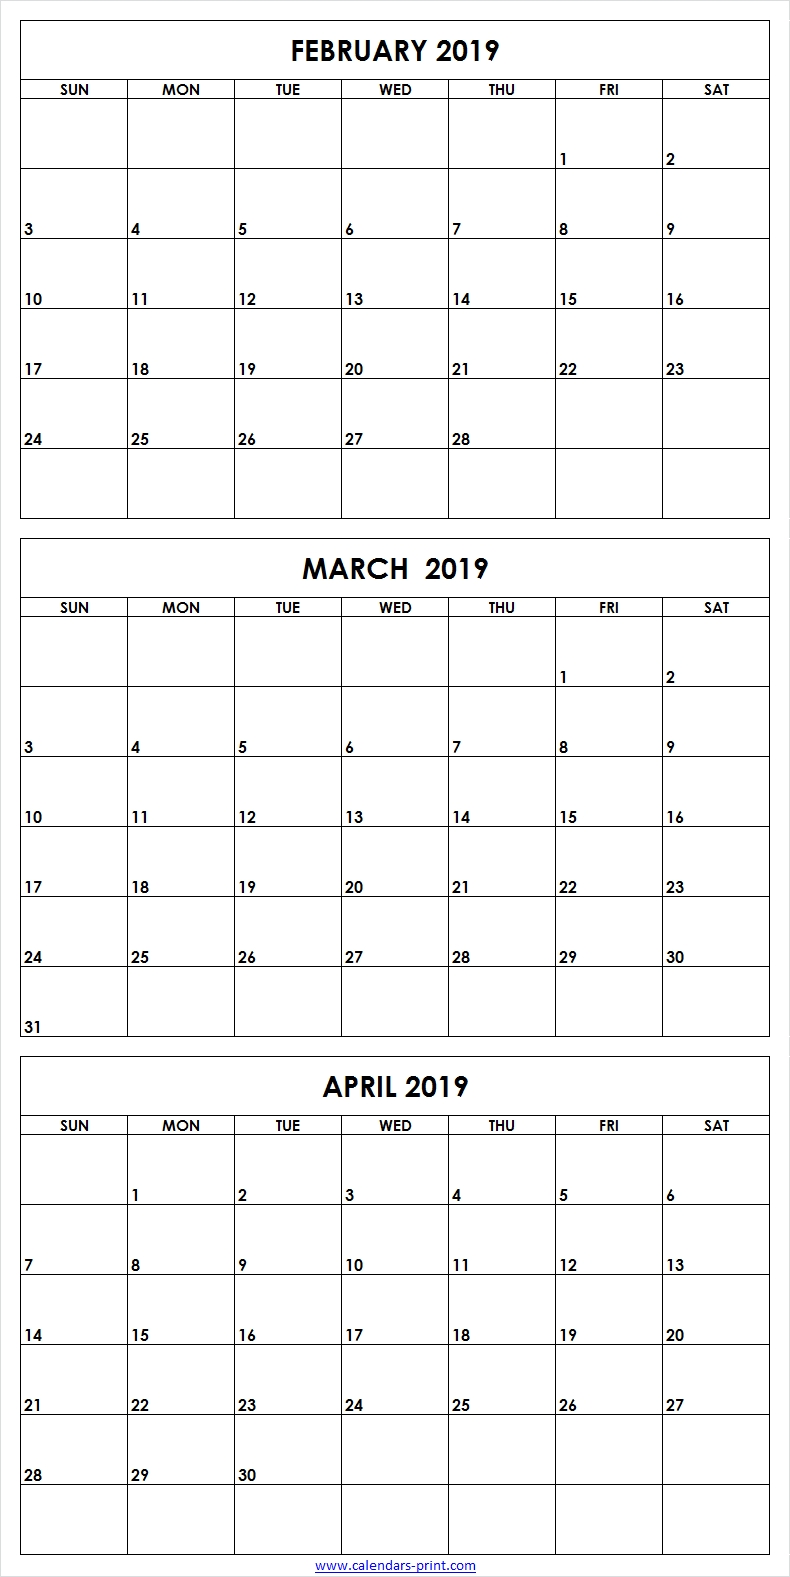 February March April 2019 Calendar (With Images)   2019